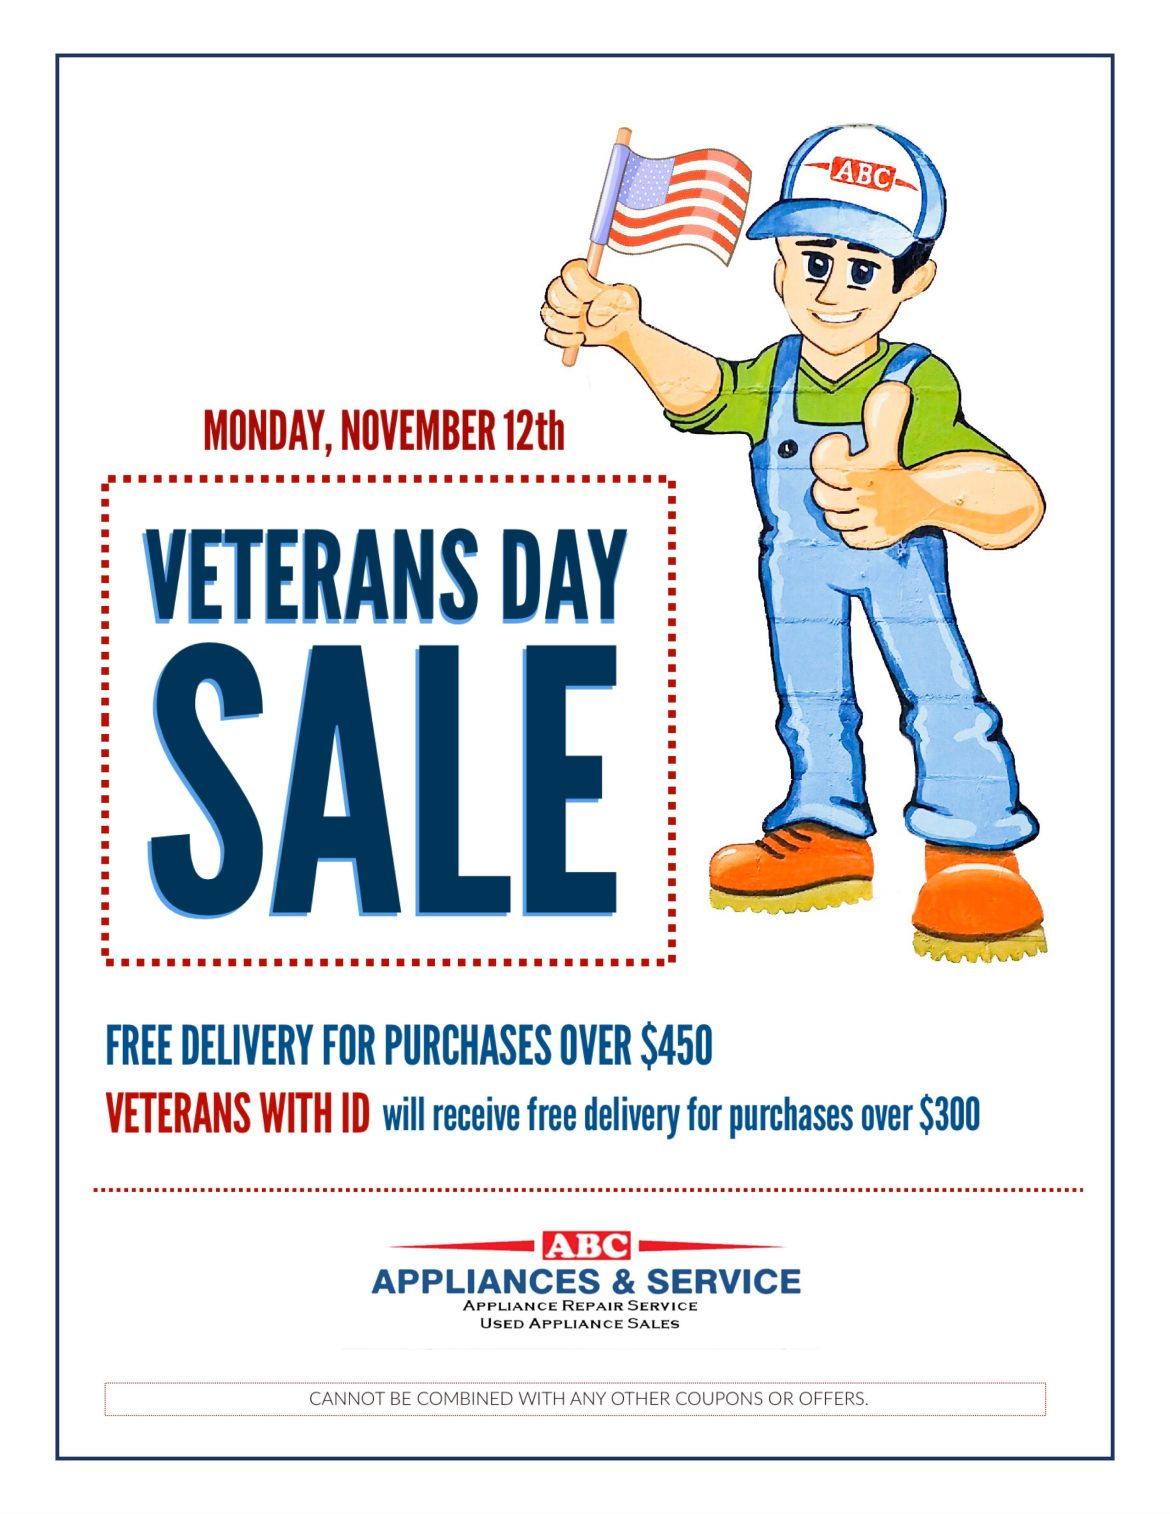 Veterans Day Sale Monday November 12th